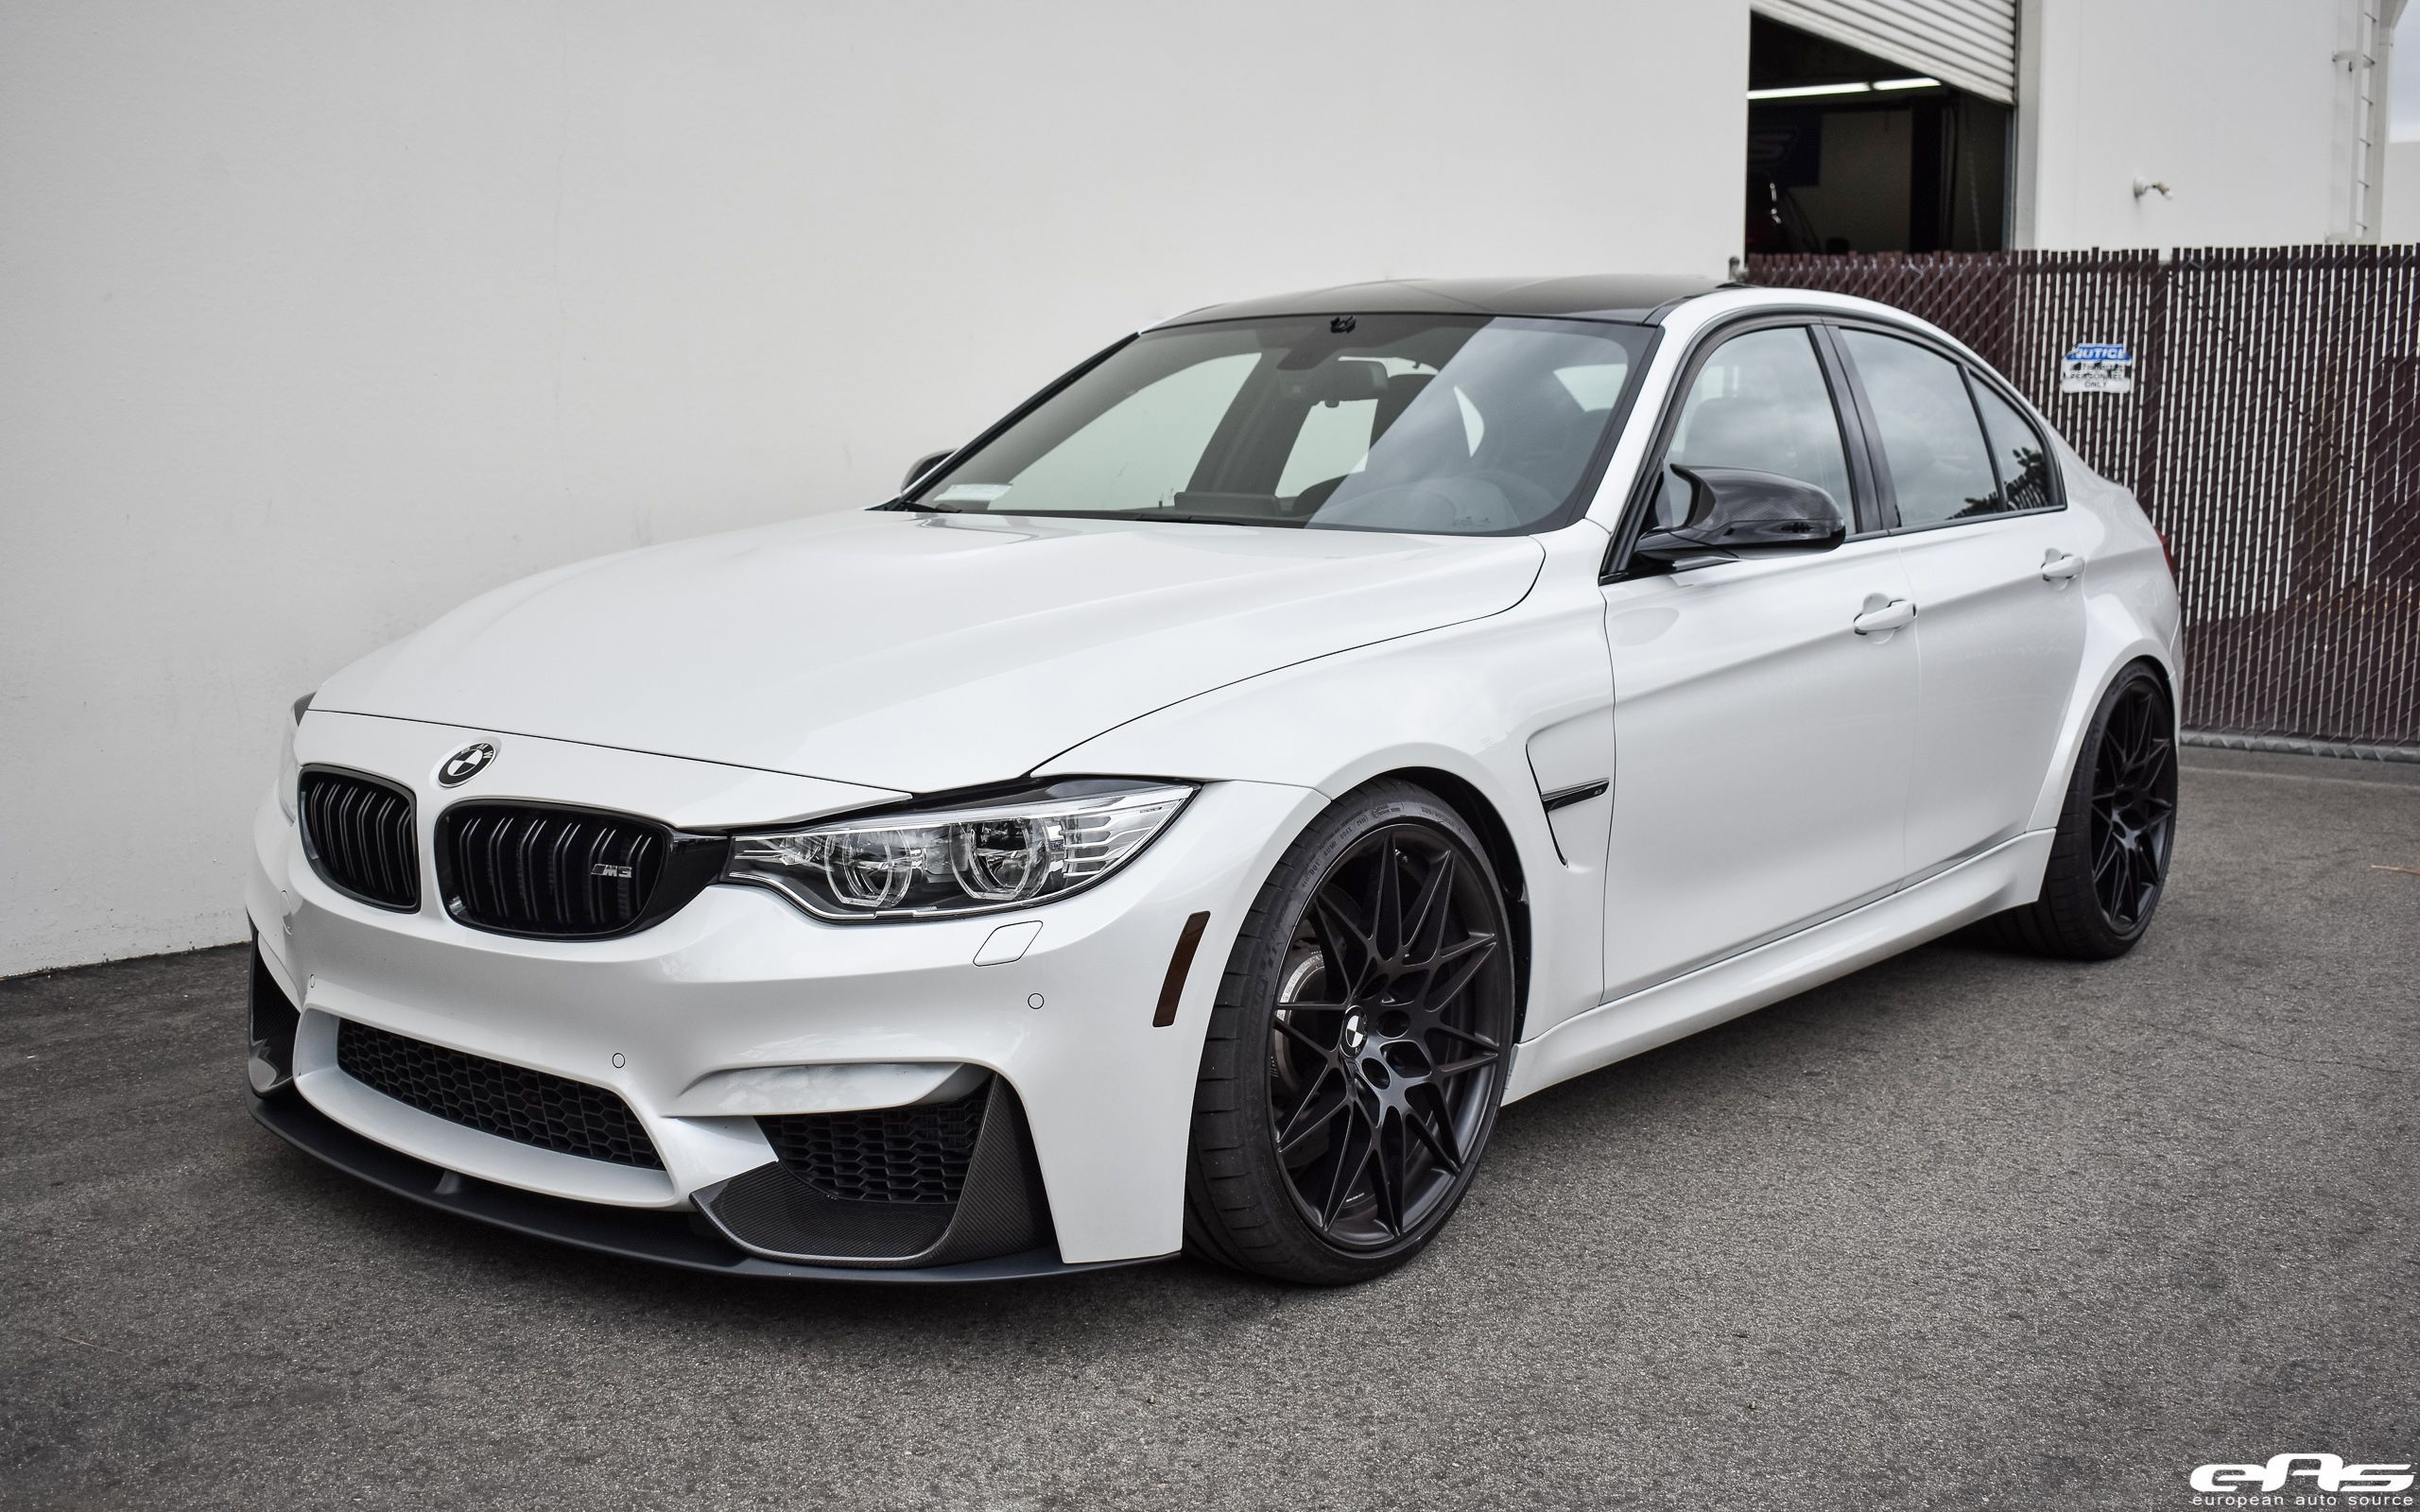 Pin by BMWBLOG on BMW Bmw m3, Bmw, Bmw white